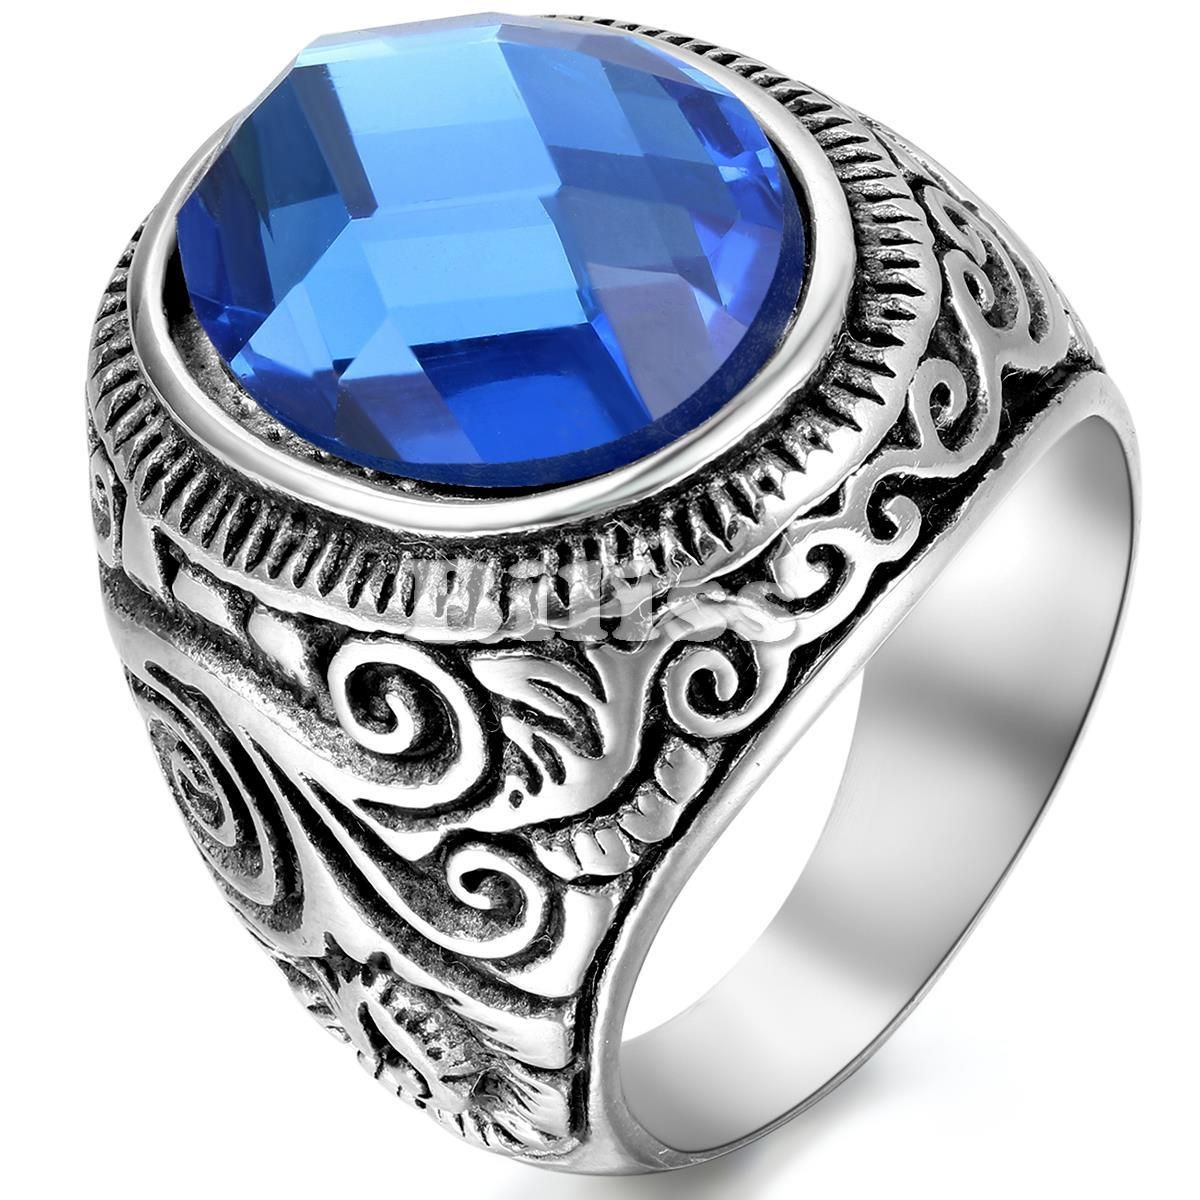 rings red proposal blue couple stainless steel are silver products promise roses